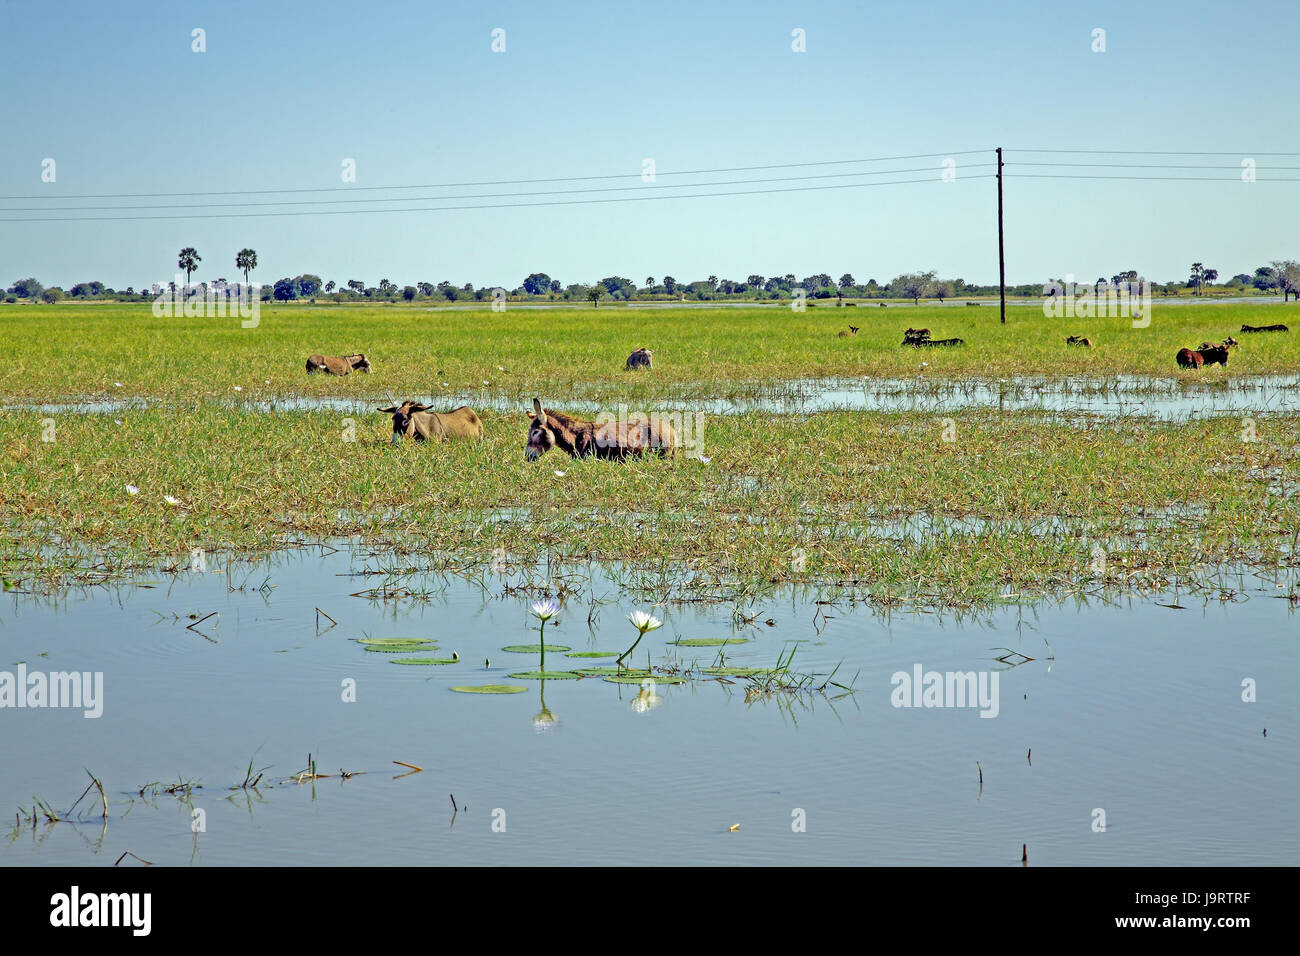 South-West Africa,Namibia,Nordnamibia,Owamboland,flood country,high water,Angola,donkey focuses,graze, - Stock Image